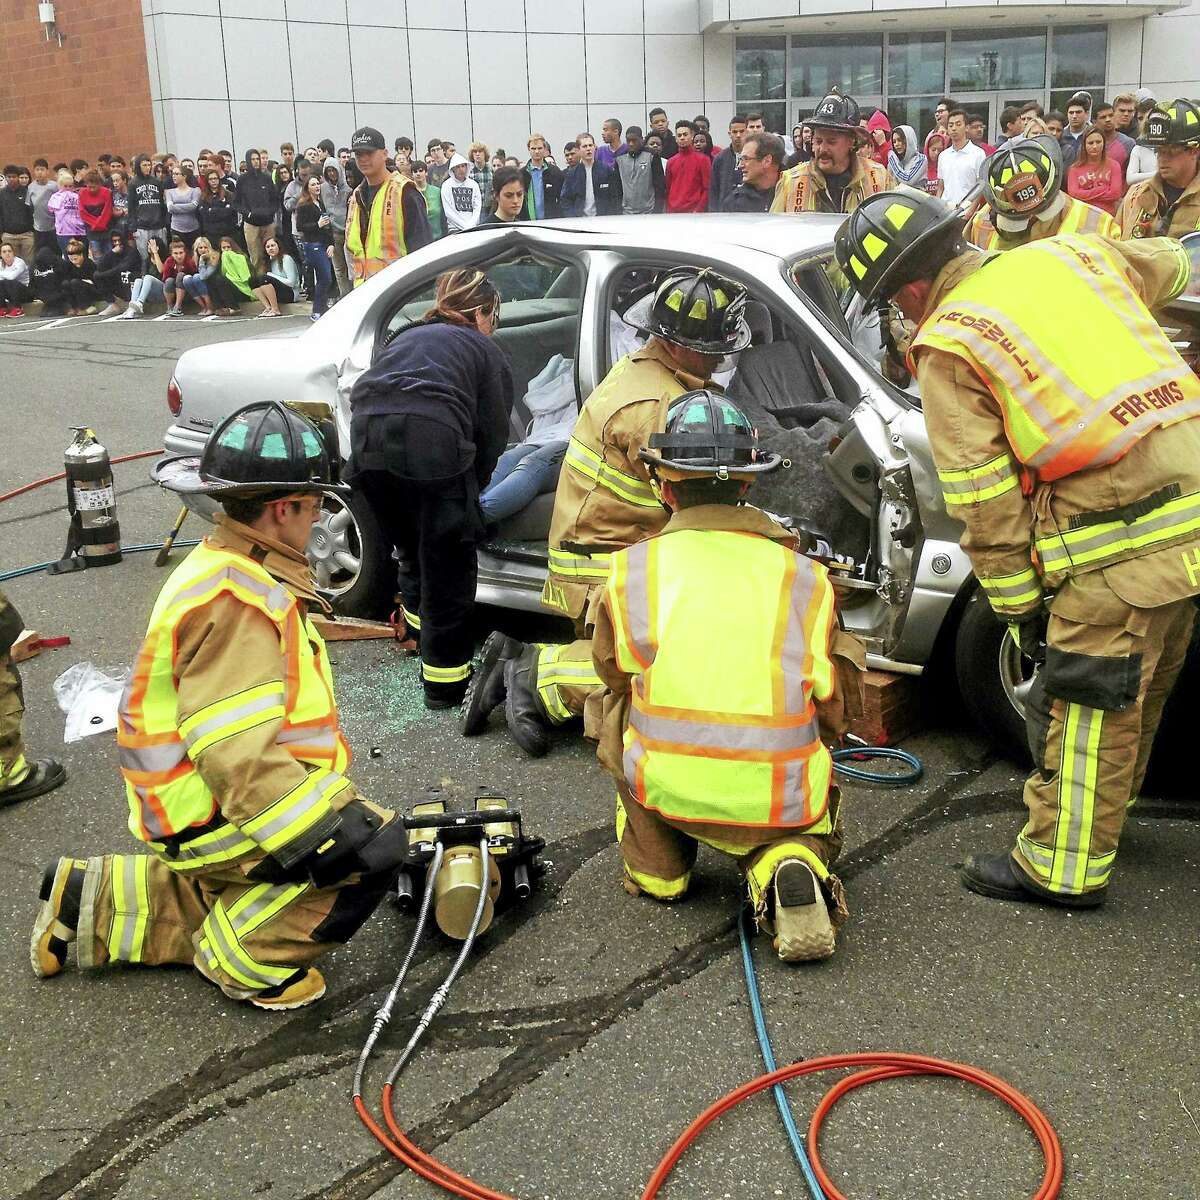 On Monday, first responders simulated the freeing of a victim from a wrecked car.